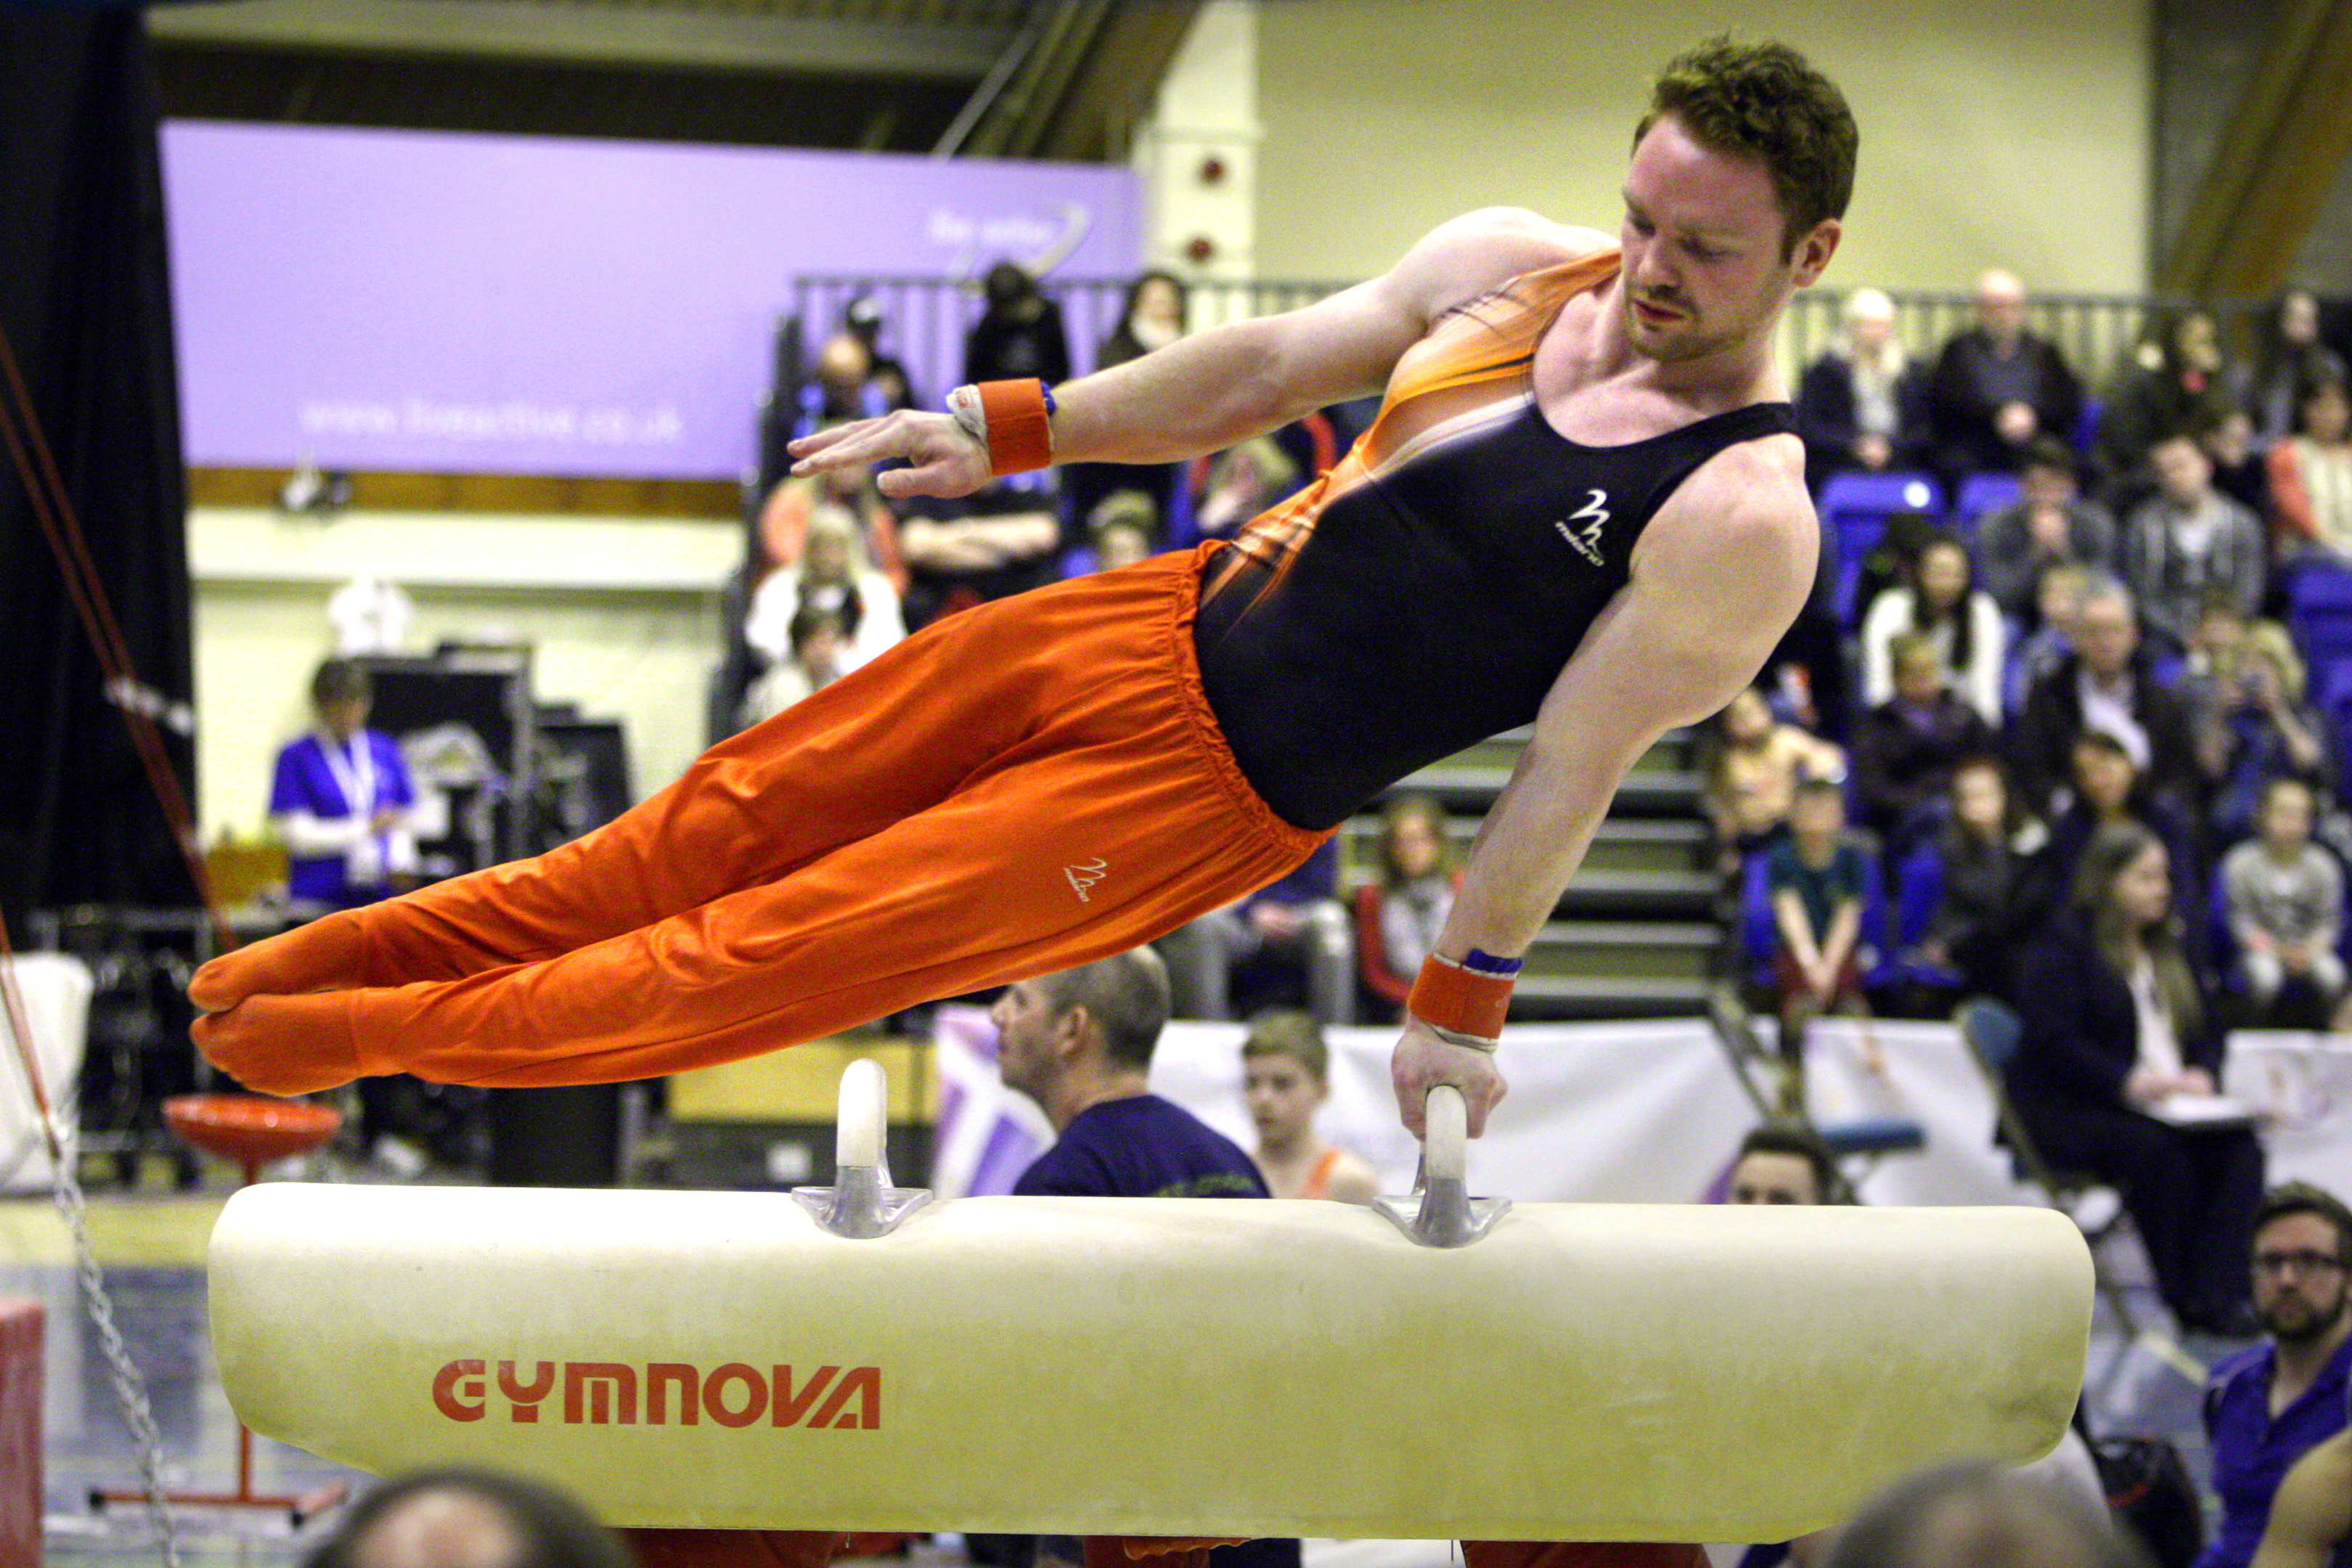 Daniel Purvis on the pommel horse at Bells Sports Centre during the 2016  Scottish National Gymnastics Championships.